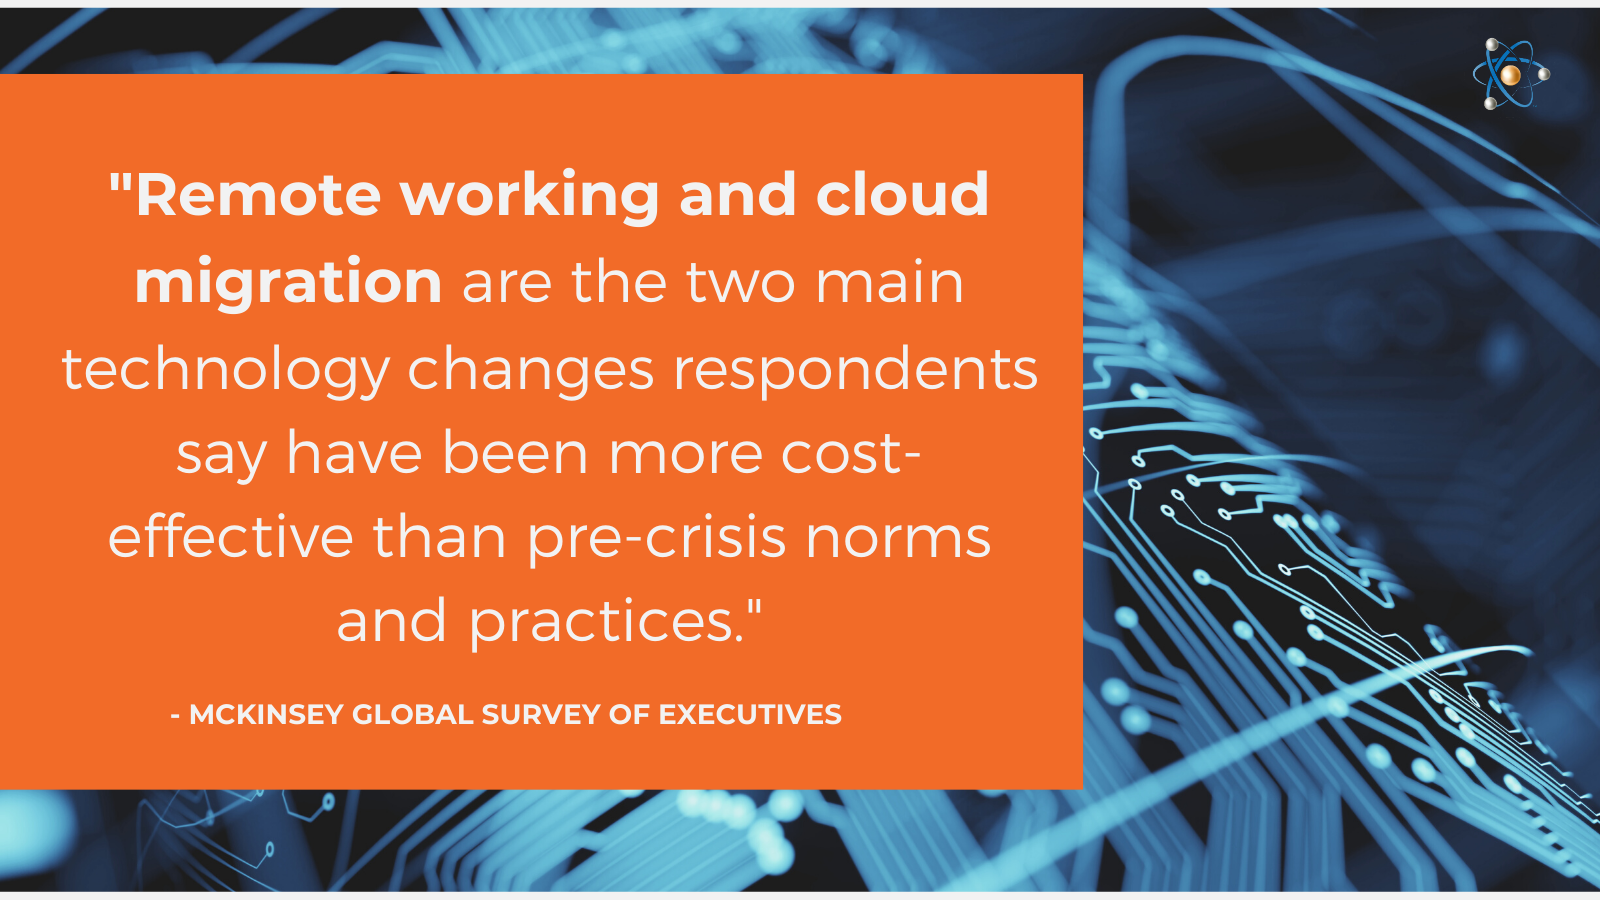 remote working cloud migration technology will become even more important